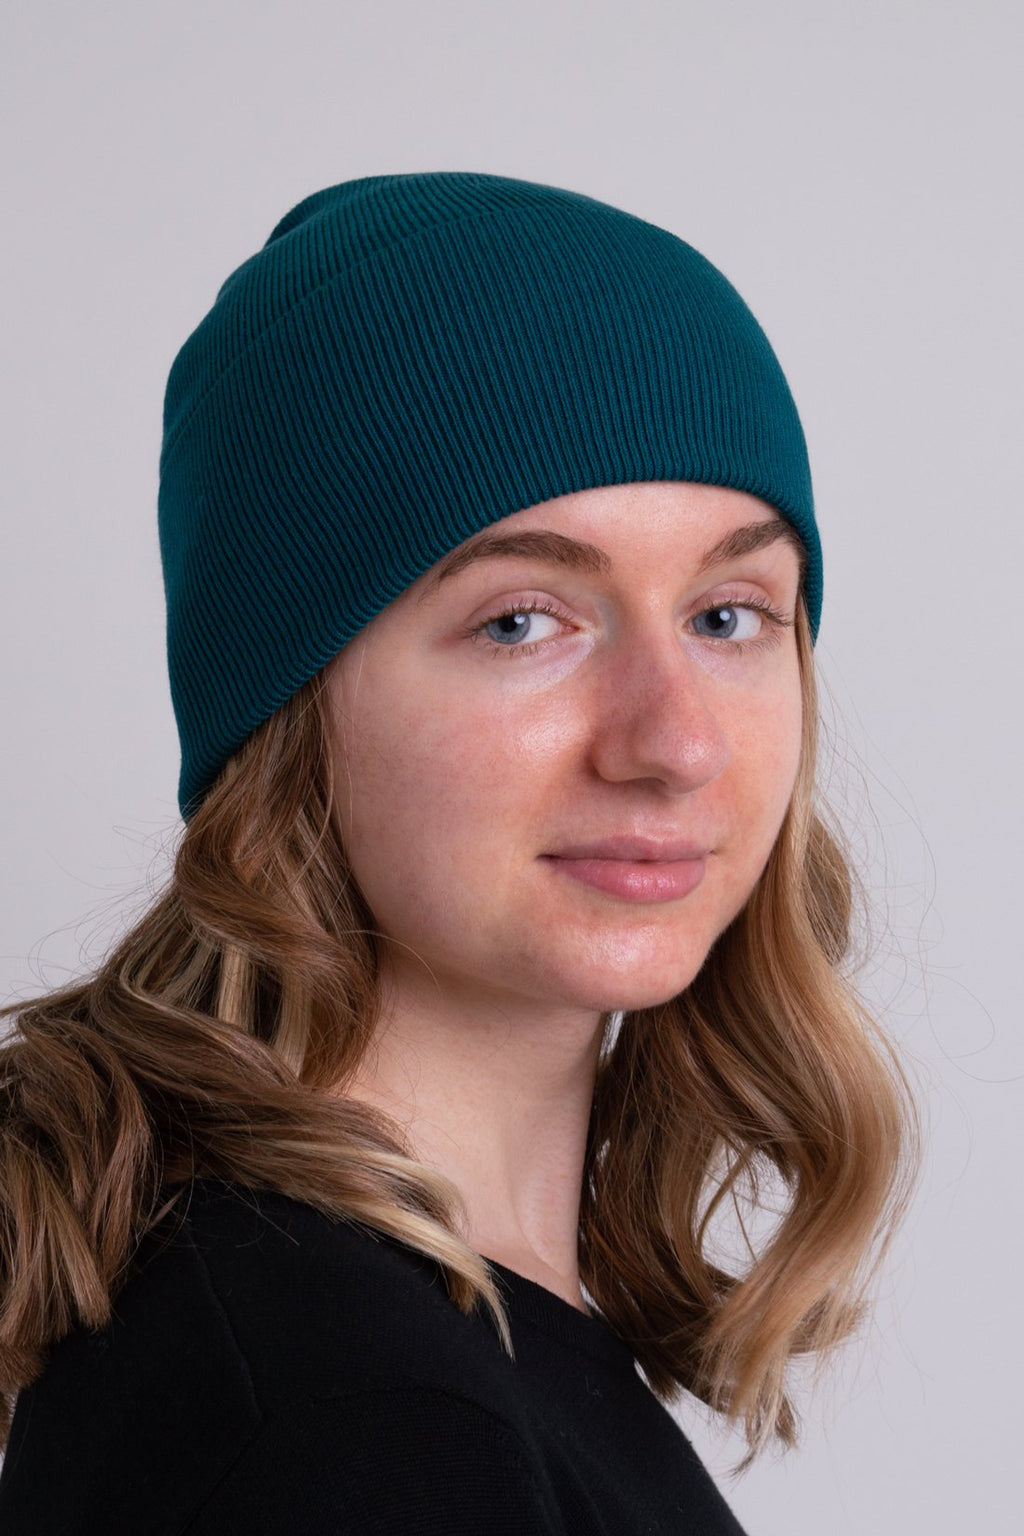 Knit Beanie, Teal, Bamboo Cotton